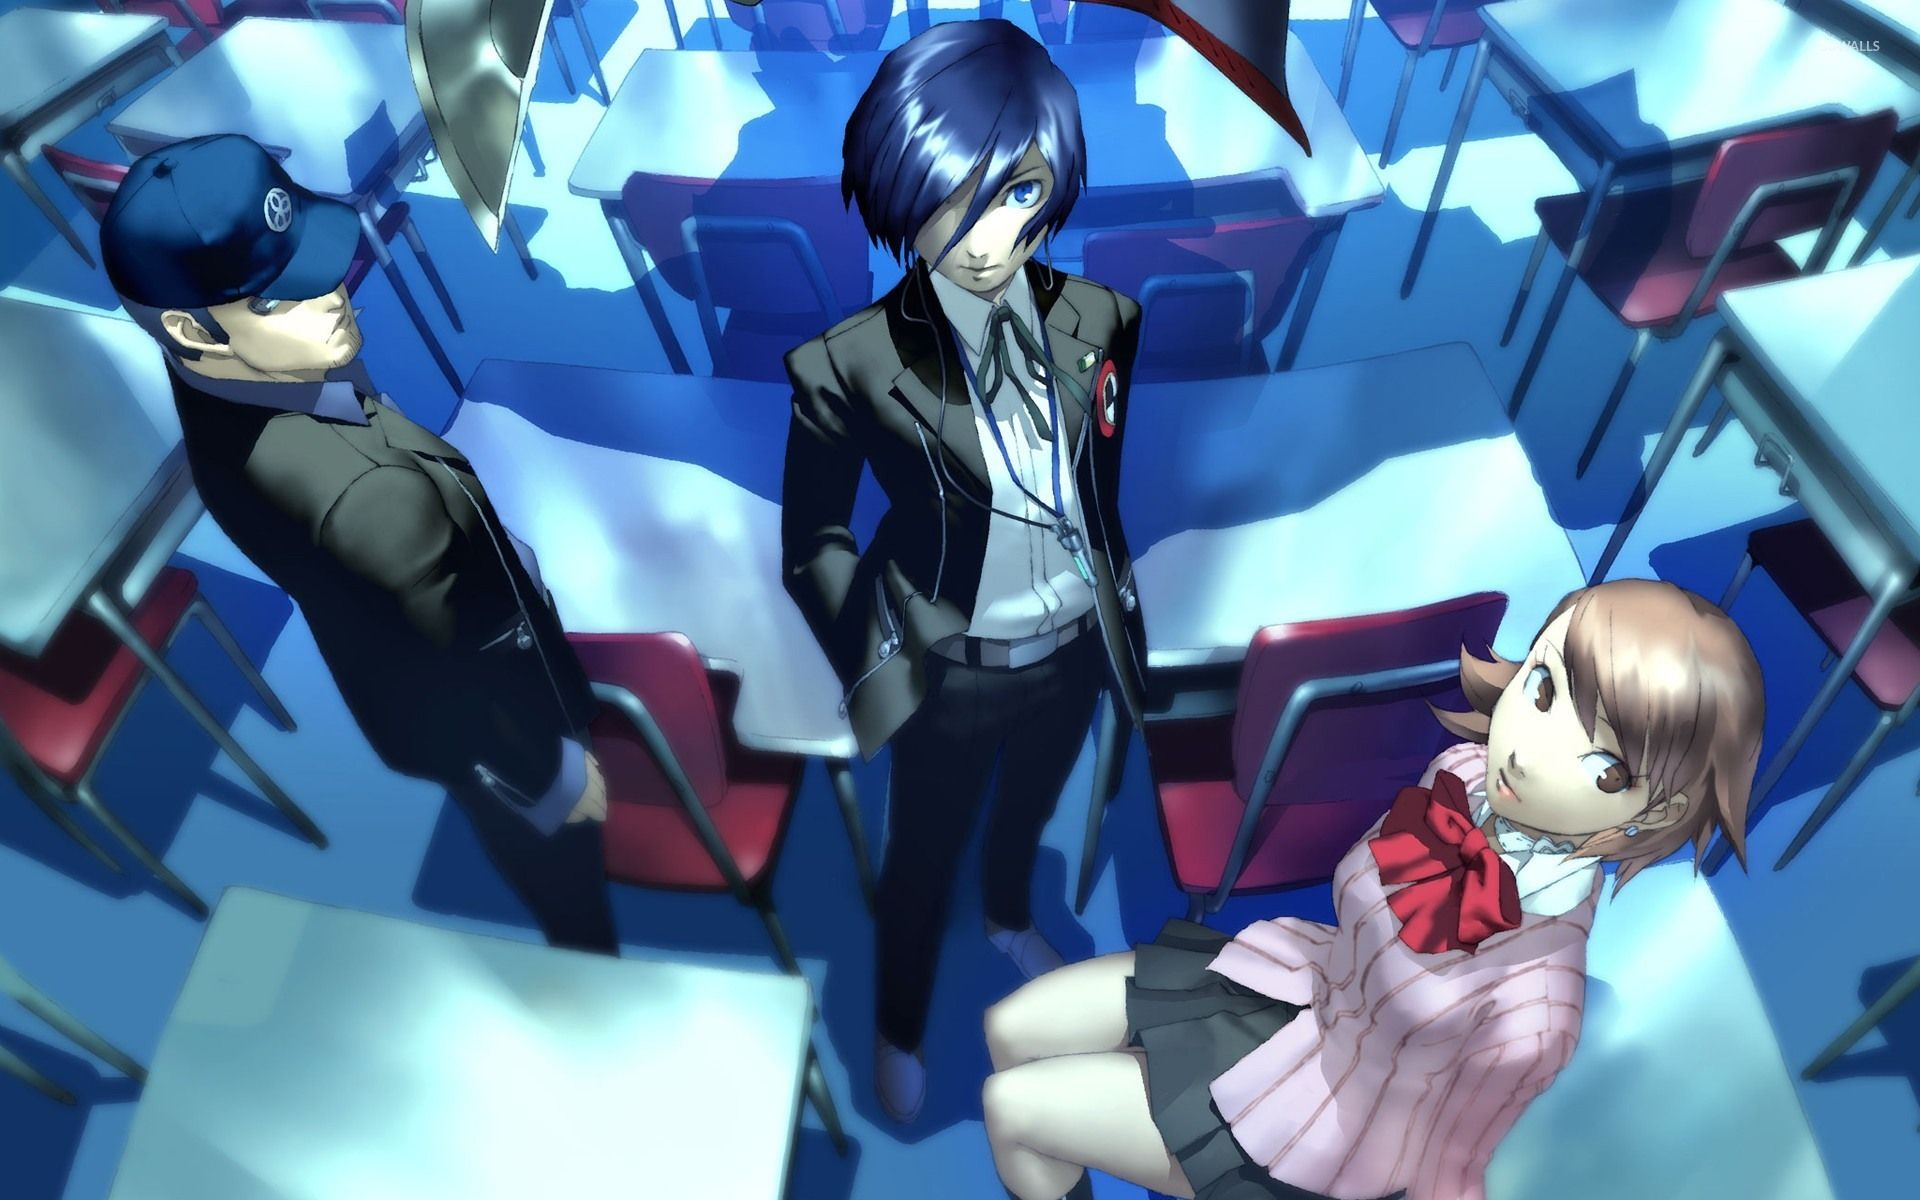 1920x1200 Shin Megami Tensei: Persona 3 wallpaper - Anime wallpapers ...